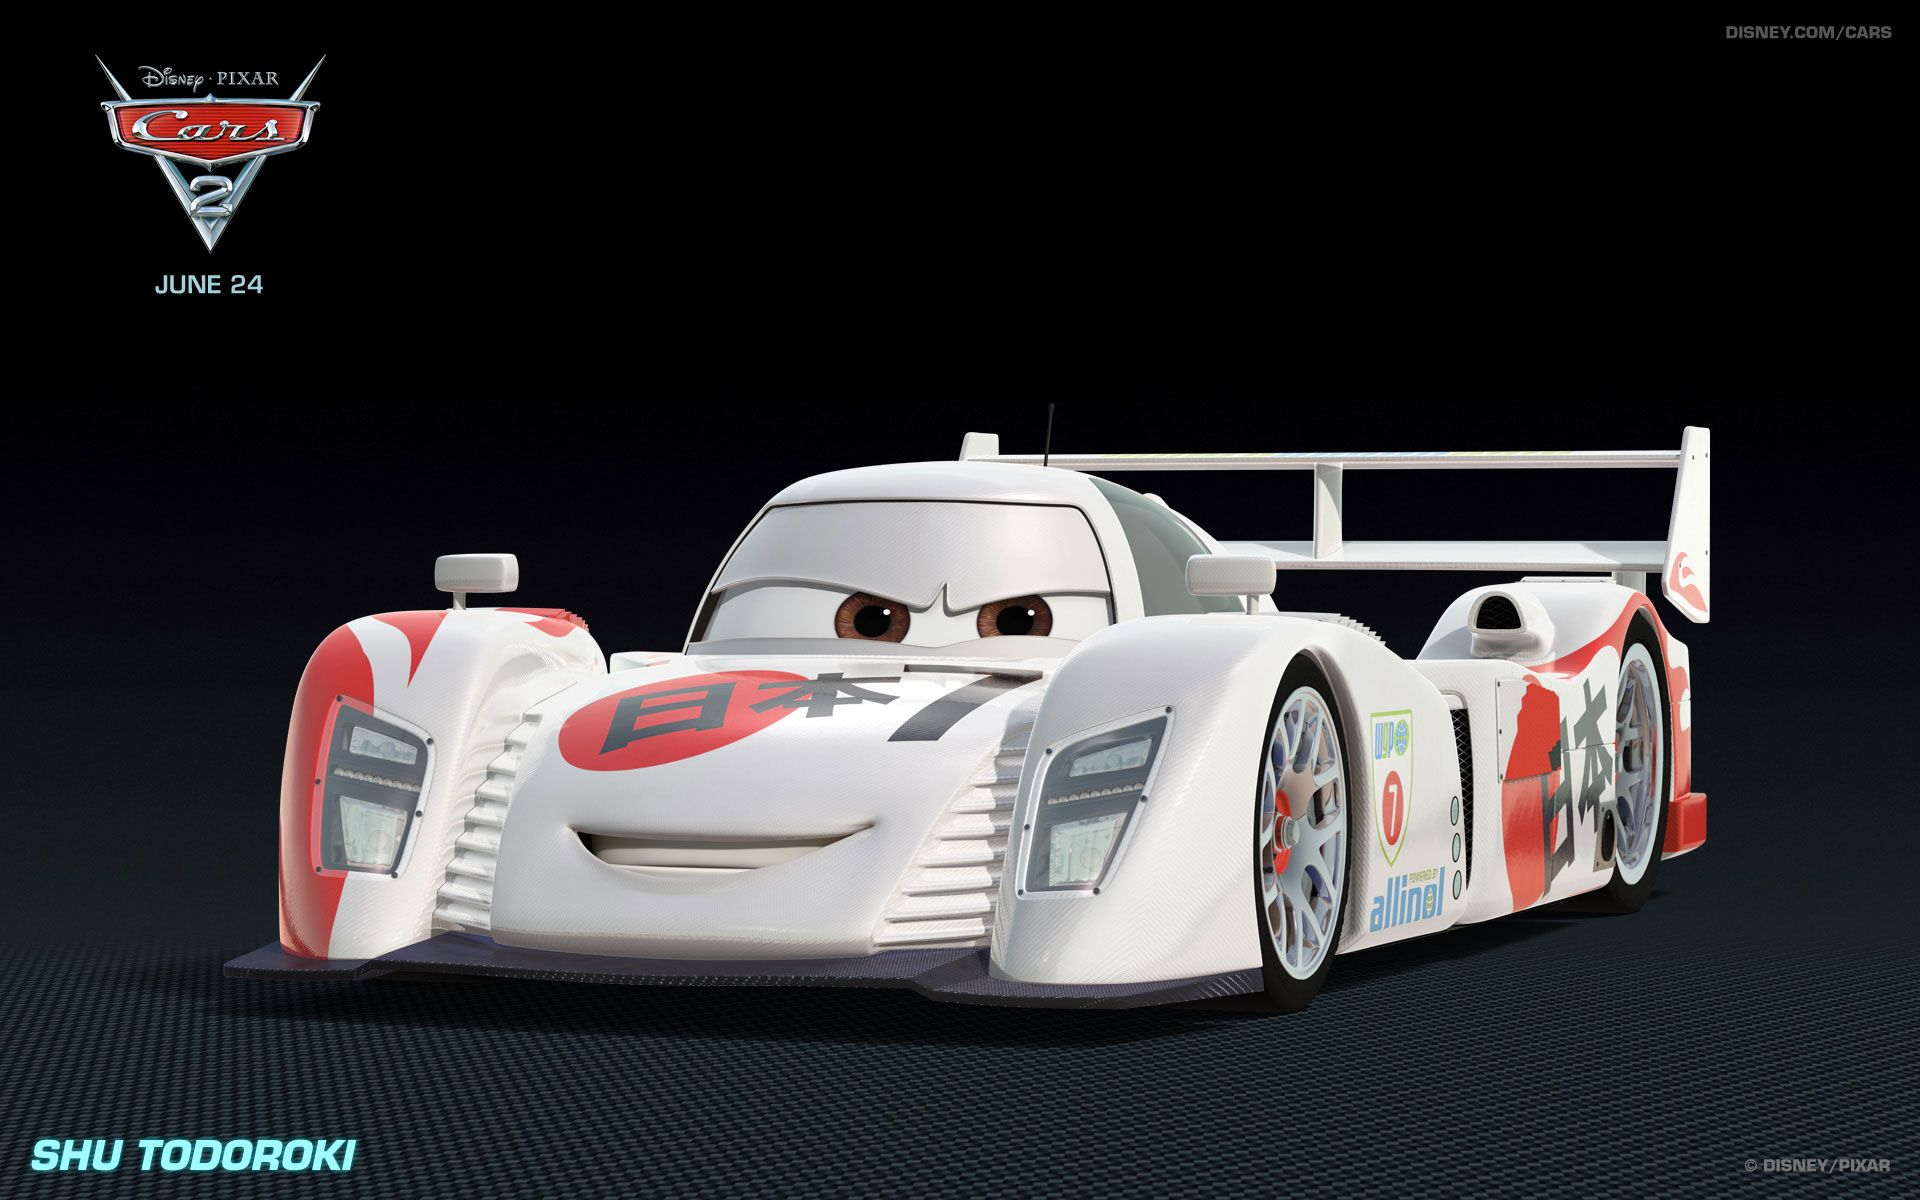 Japanese race car in cars 2 movie wallpapers 41